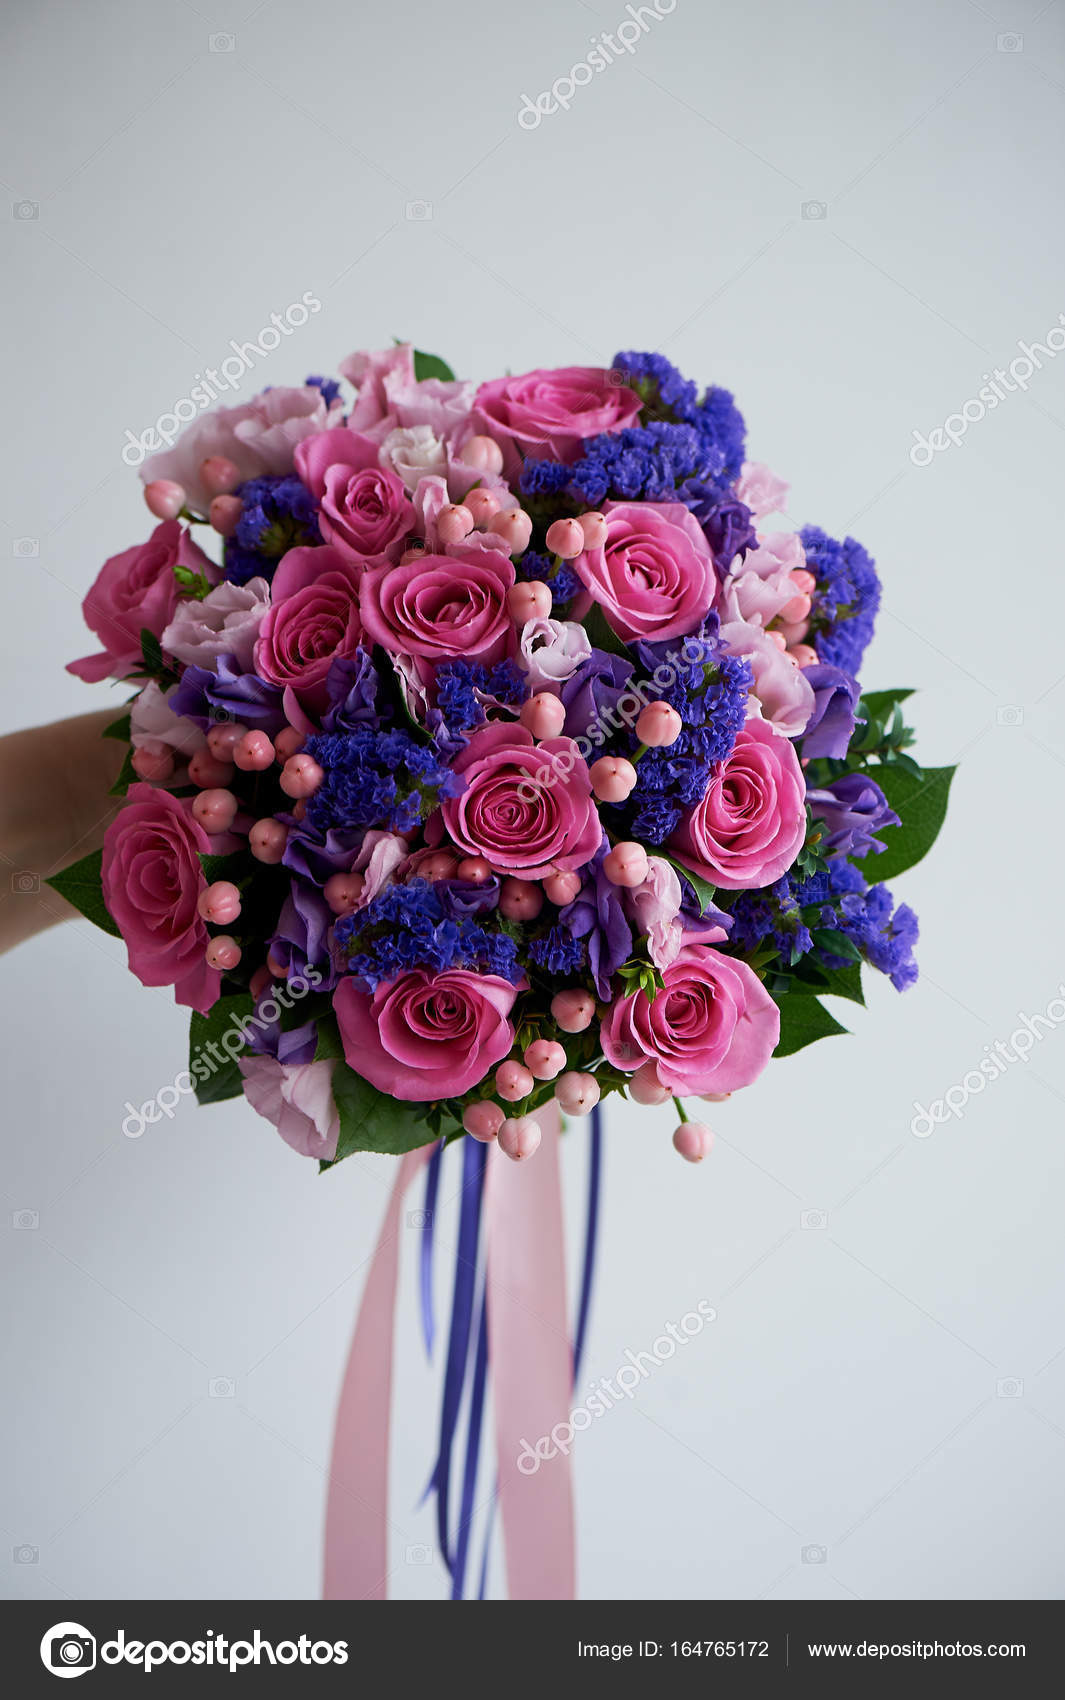 General View Wedding Bouquet In Pink And Purple Tones Beautiful And